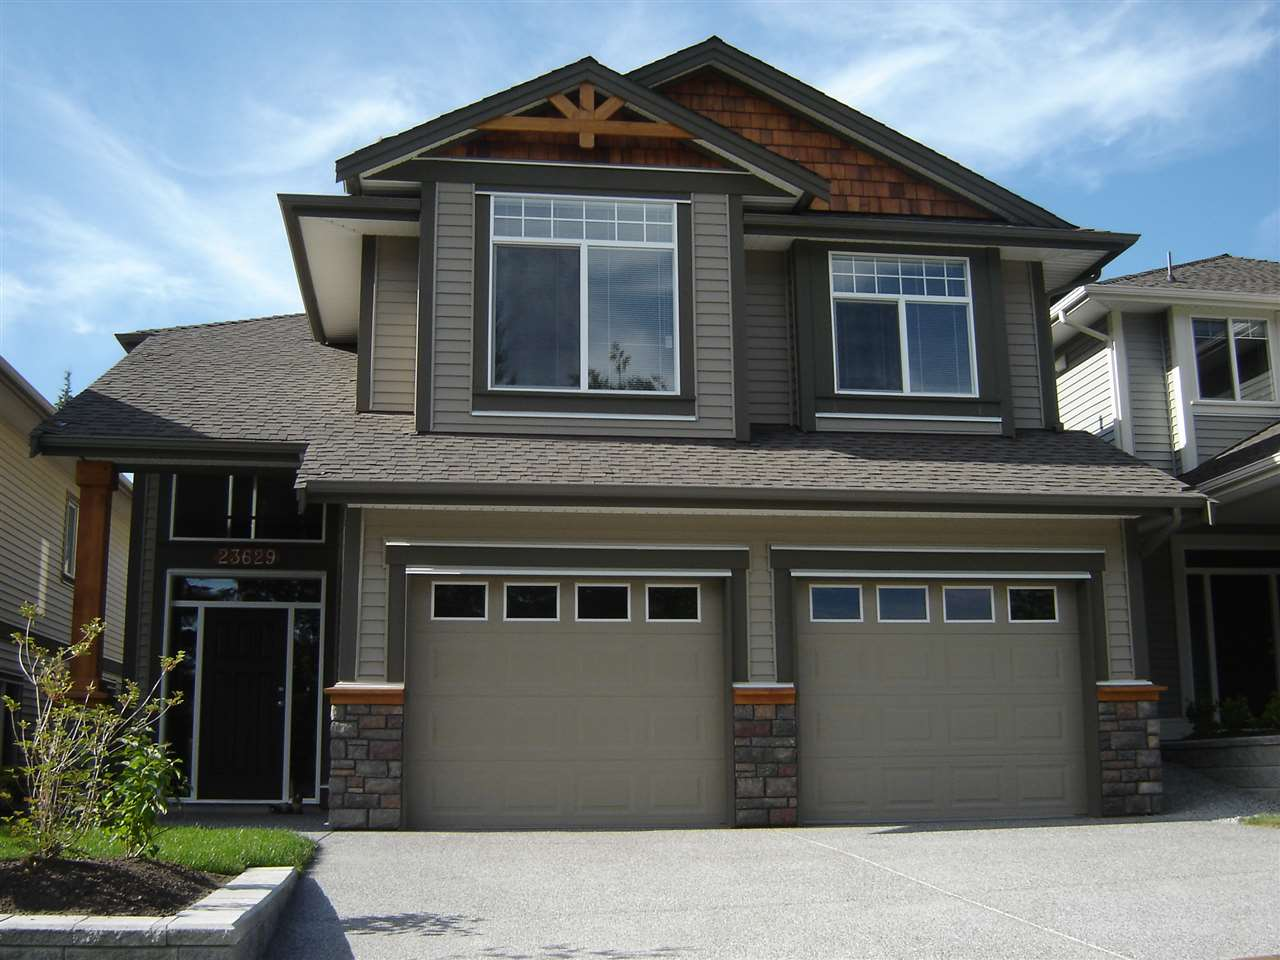 Main Photo: 23629 133 Avenue in Maple Ridge: Silver Valley House for sale : MLS® # R2020705